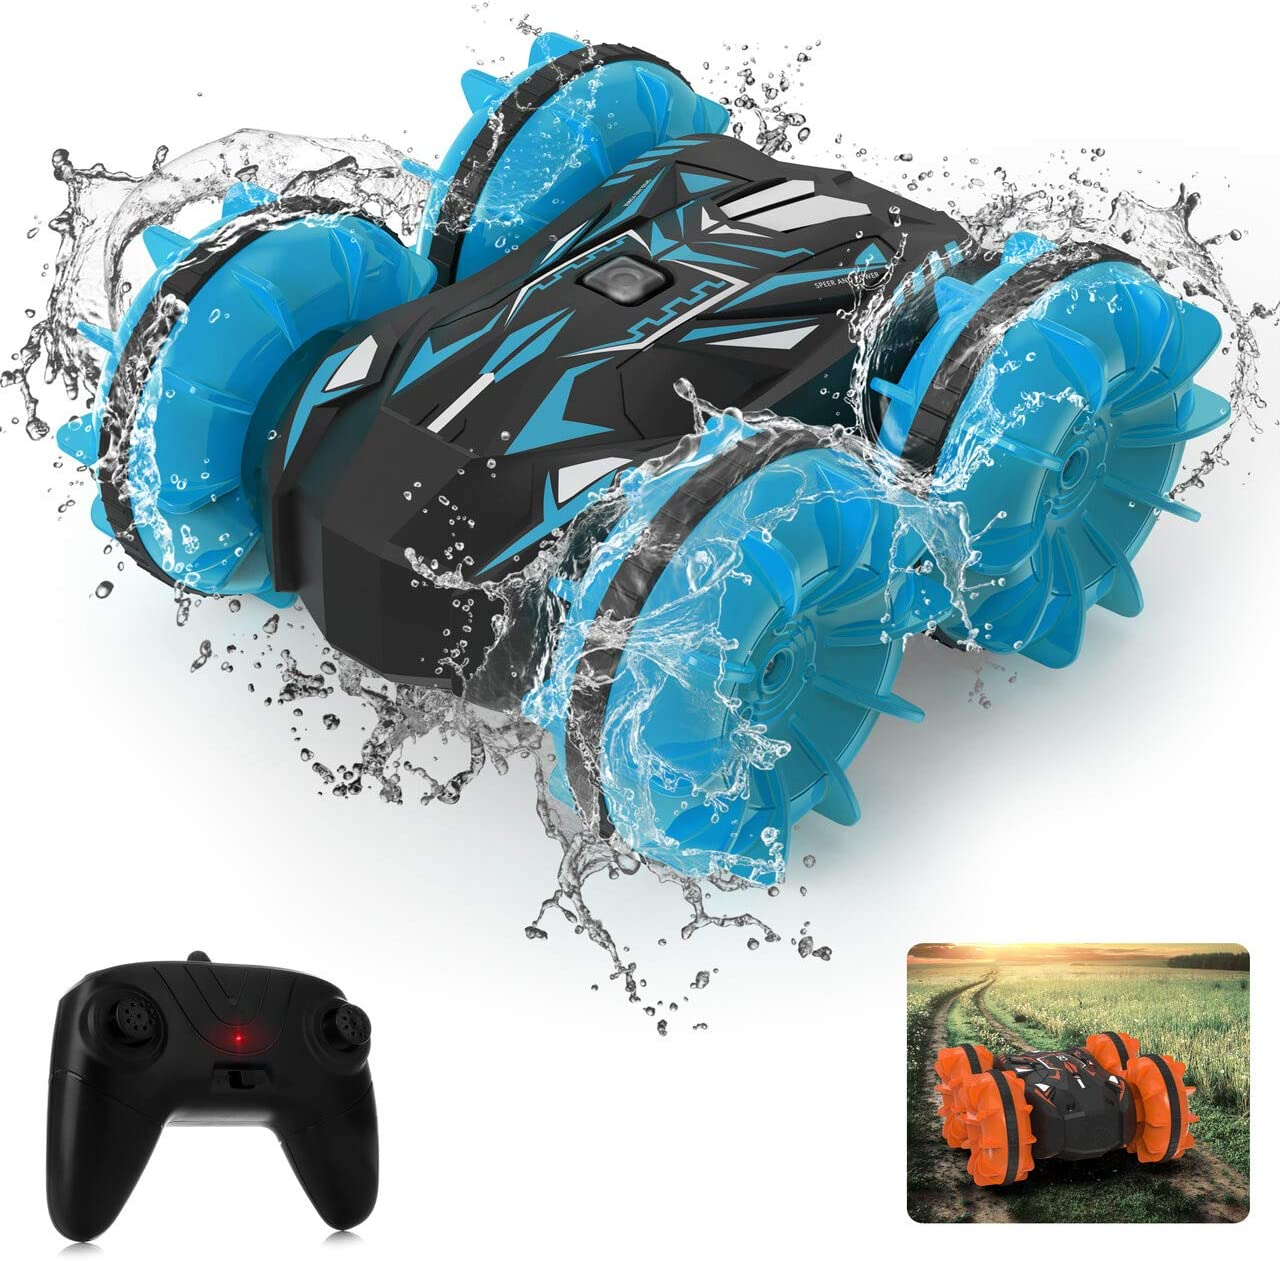 Waterproof Remote Control Car, 2.4Ghz Remote Control 4WD Double Sided Driving 360° Spinning, High Speed, 1:20 Scale, Pool Beach Land Stunt Toy Car for Kids Age 4-12 (Blue)